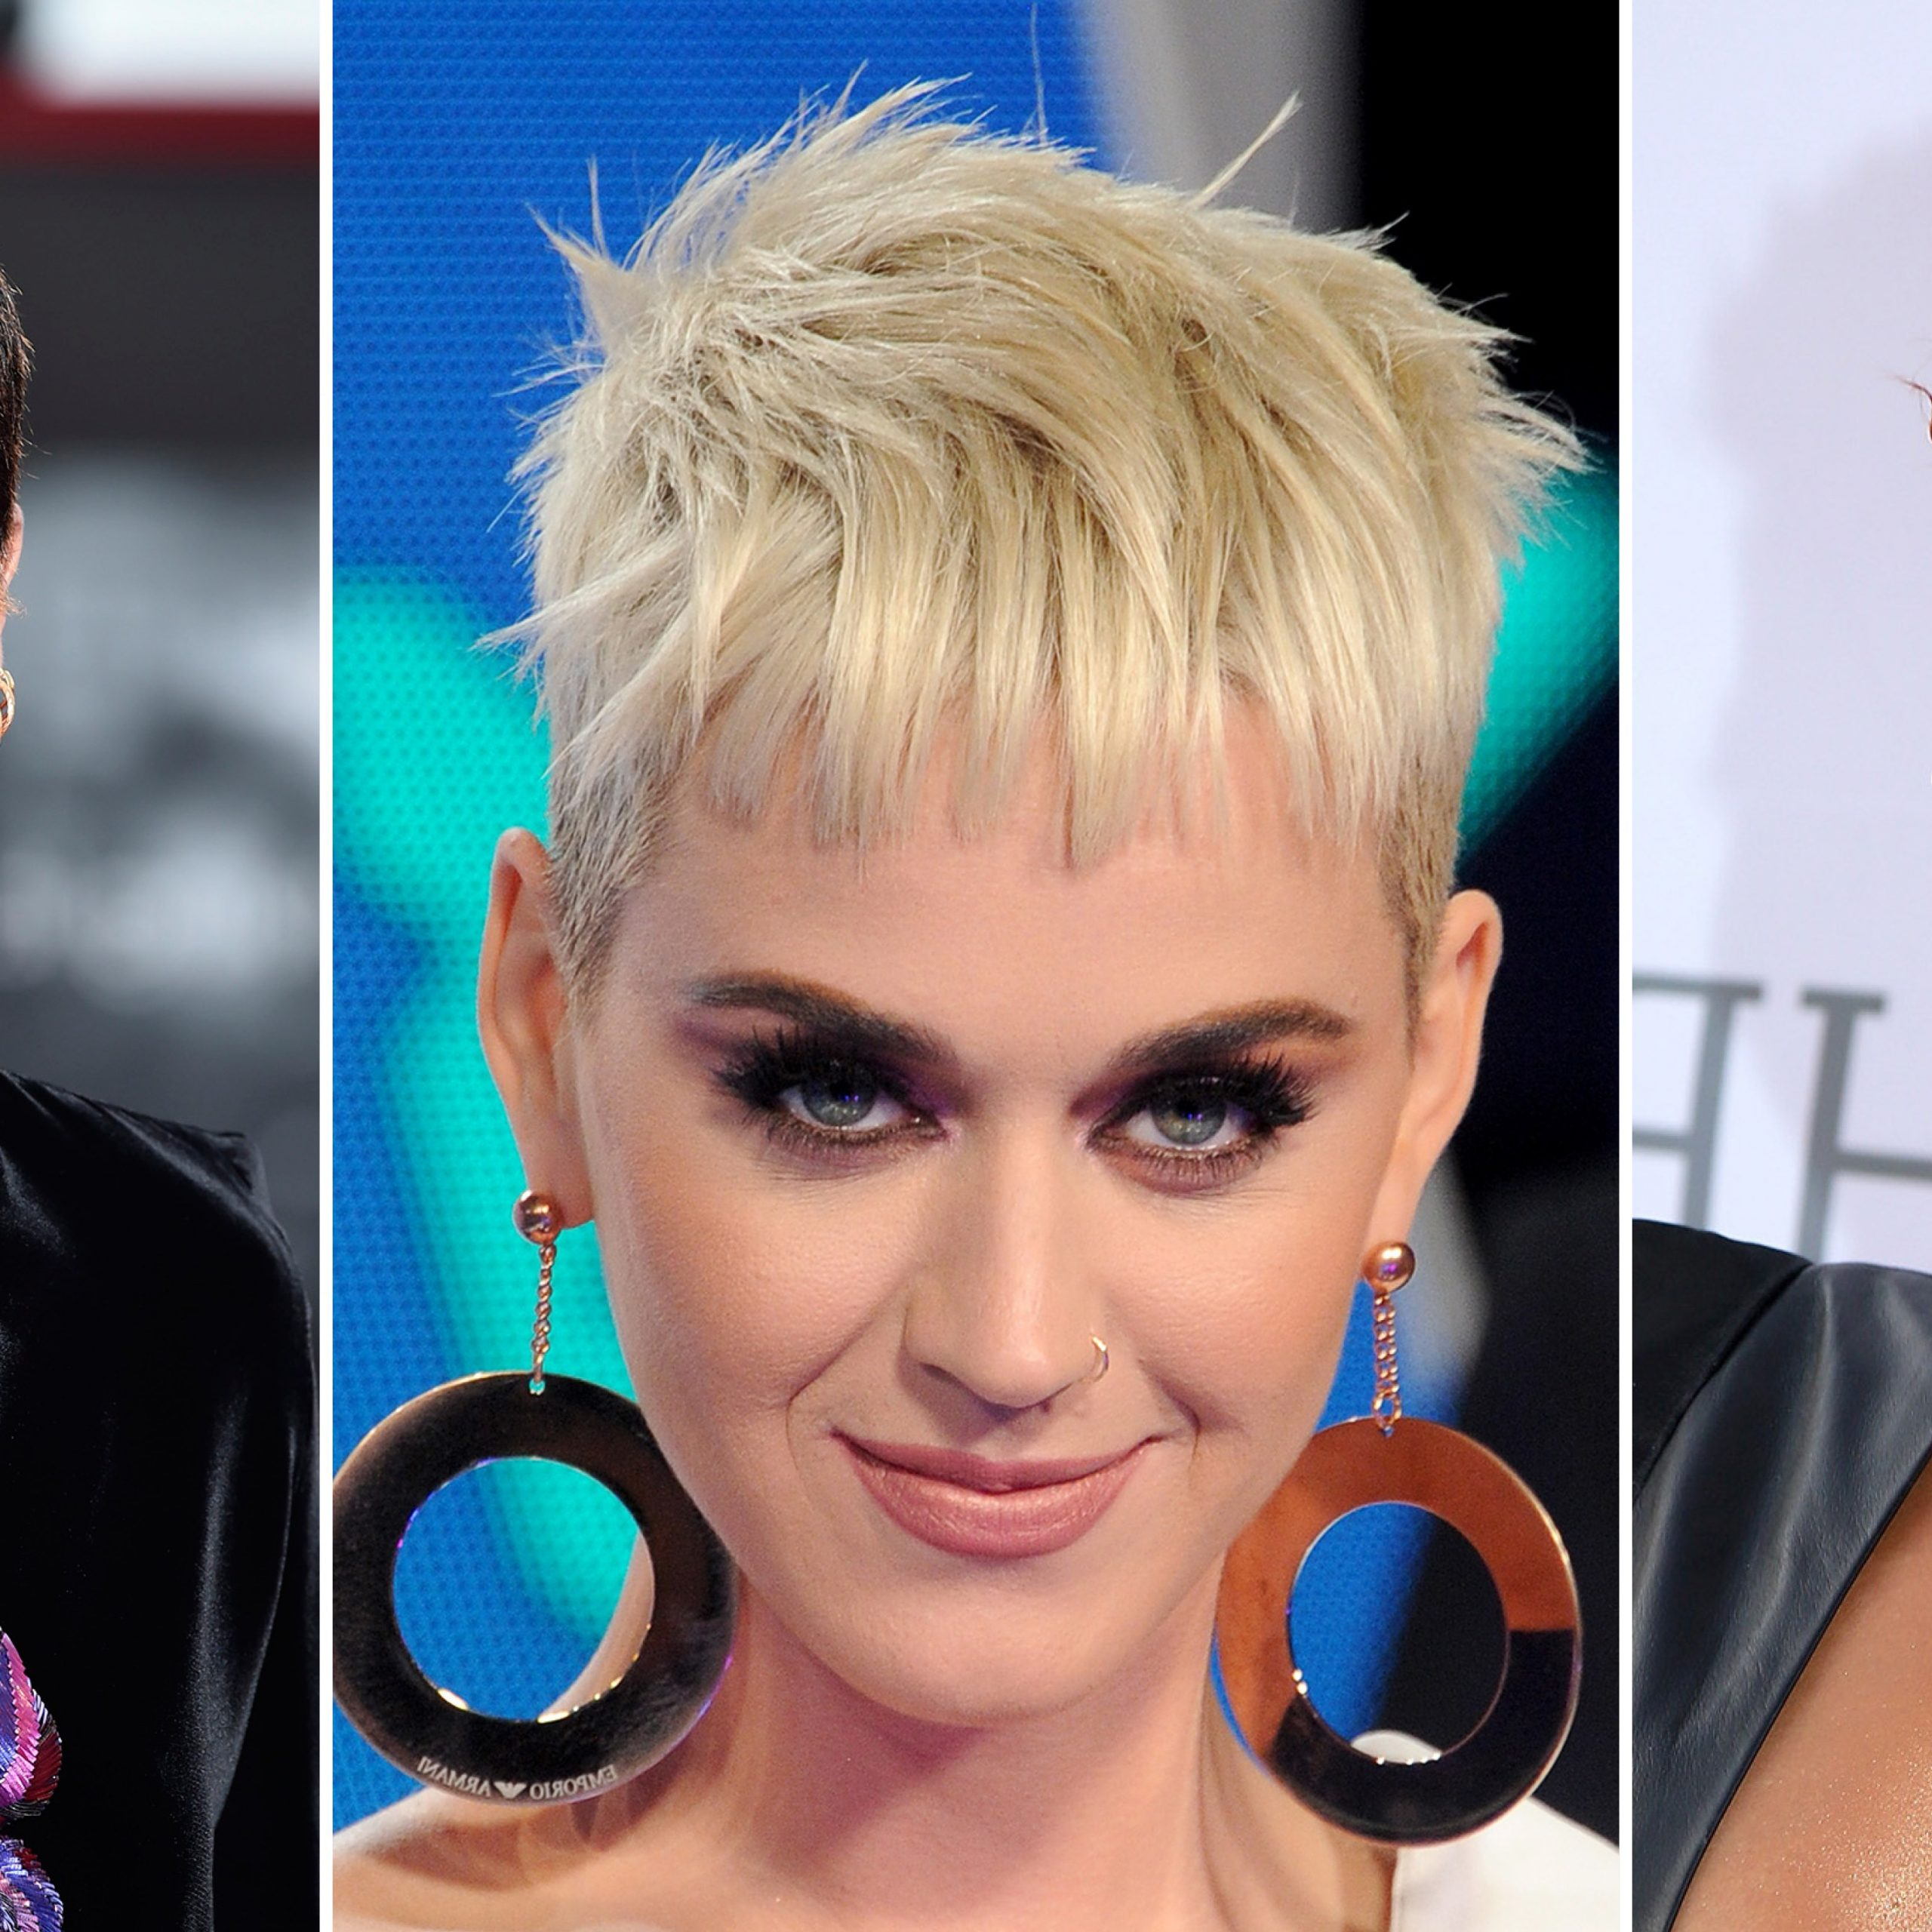 19 Best Pixie Cuts Of 2019 – Celebrity Pixie Hairstyle Ideas Regarding Recent Edgy Messy Pixie Haircuts (Gallery 19 of 20)